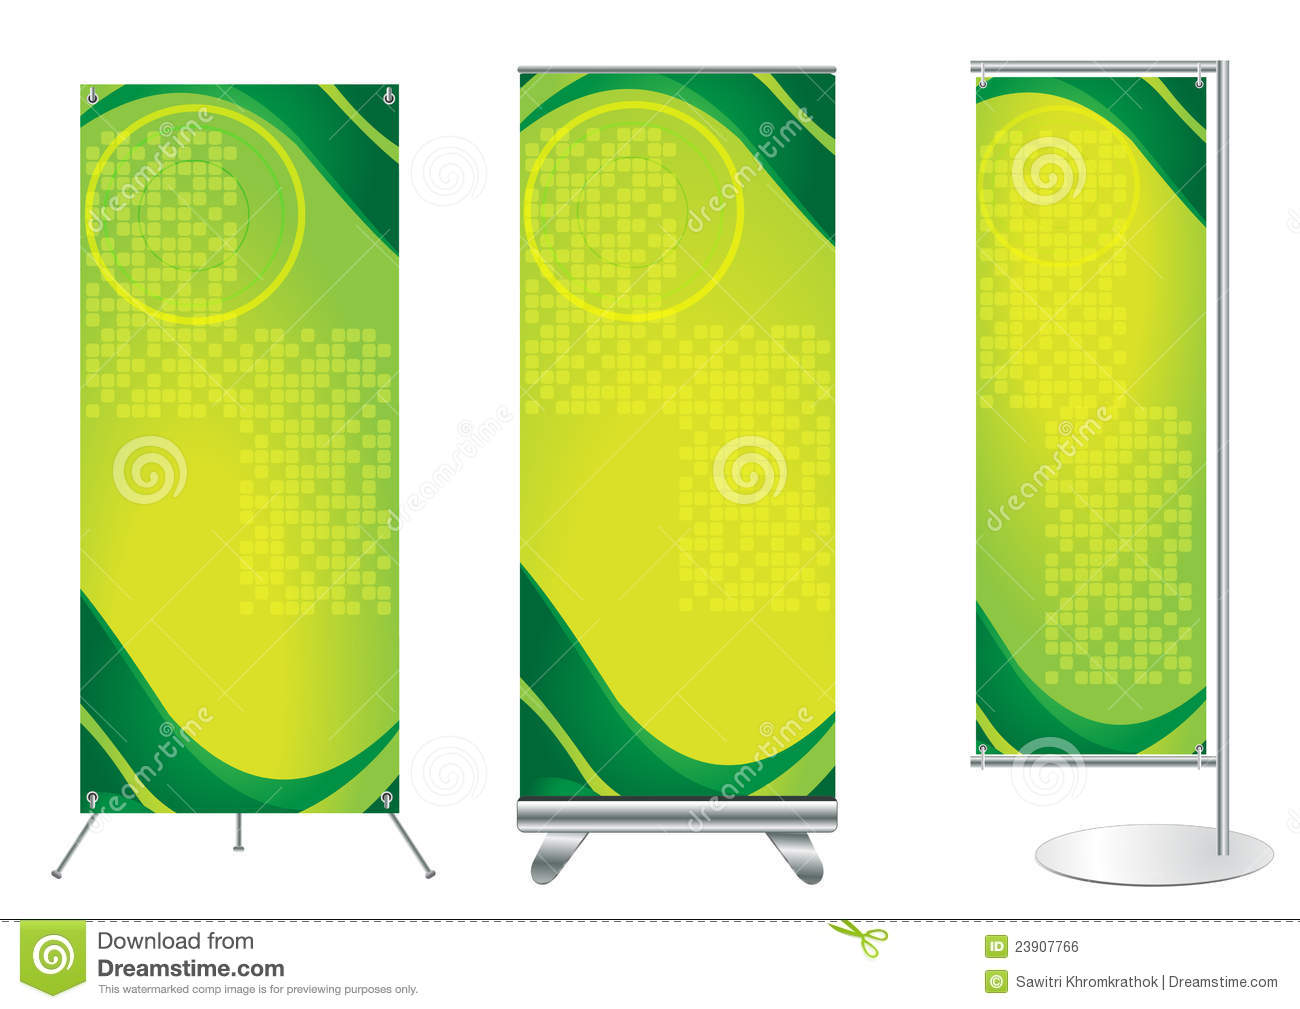 Exhibition Stand Vector Free Download : Vector banner stand display stock illustration of